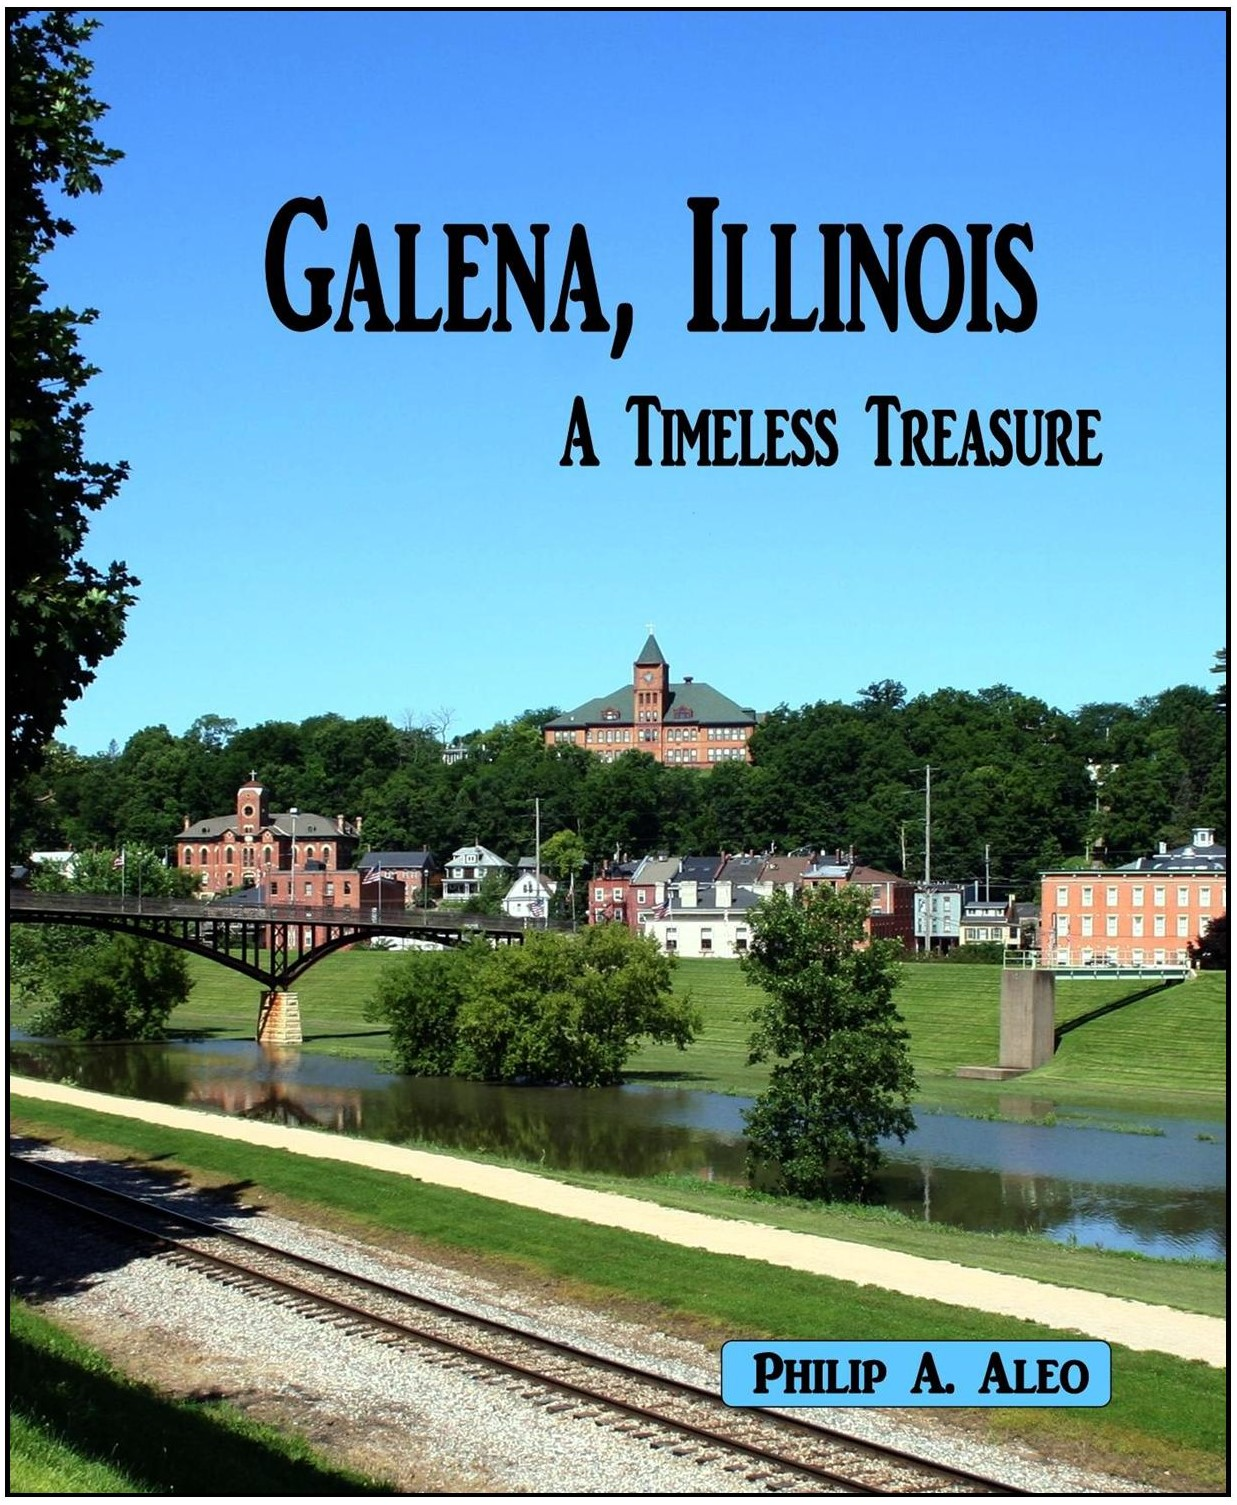 Galena Illinois.jpg